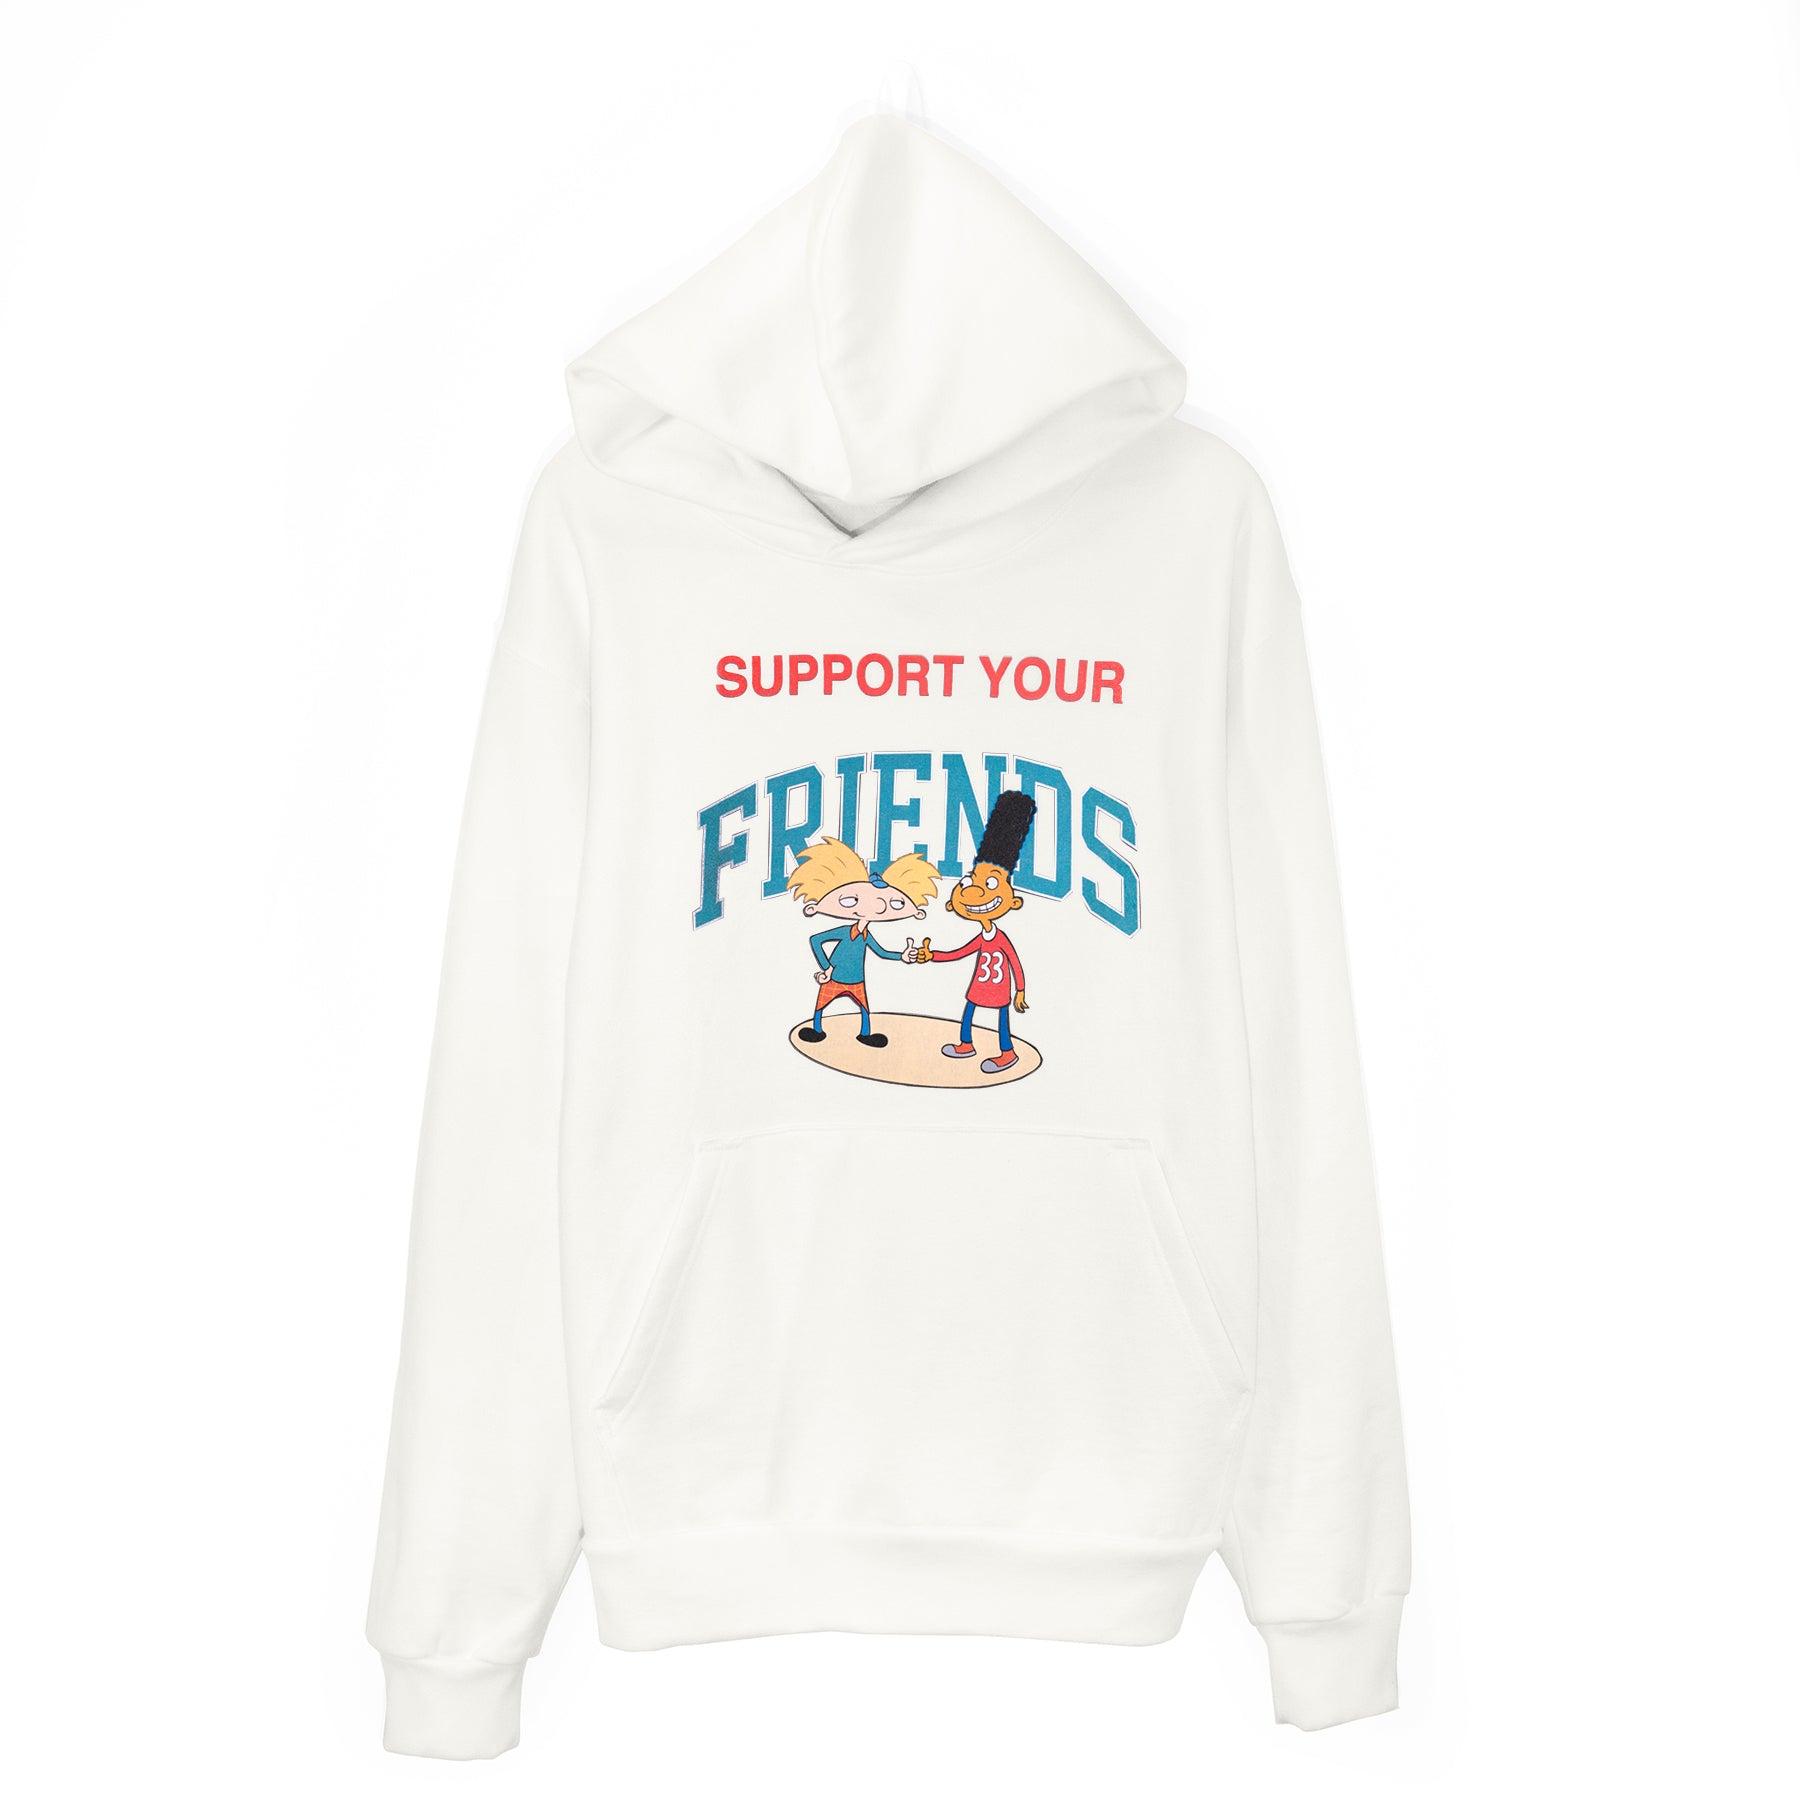 SUPPORT YOUR BEST FRIENDS HOODIE - IVORY